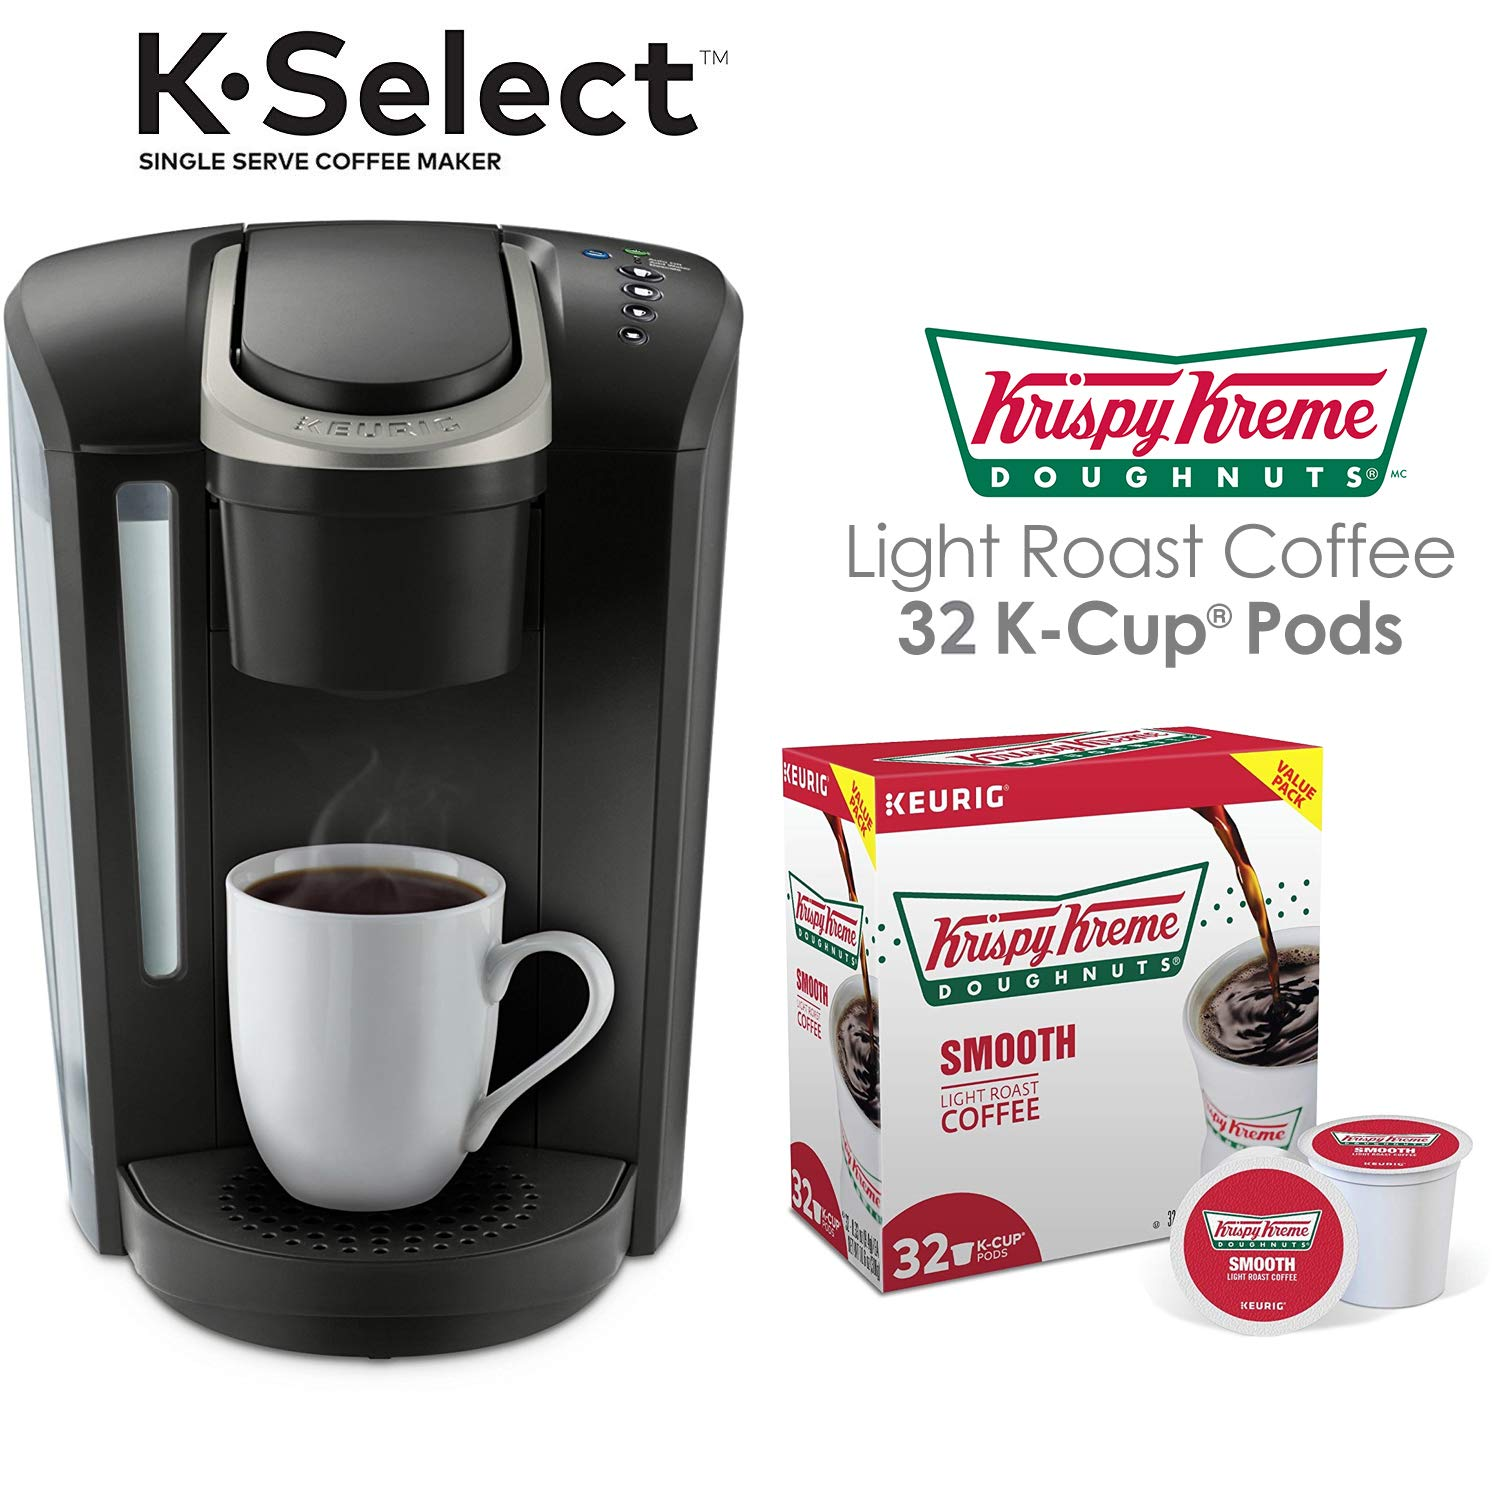 Today Only Keurig K Select Single Serve Coffee Maker 32